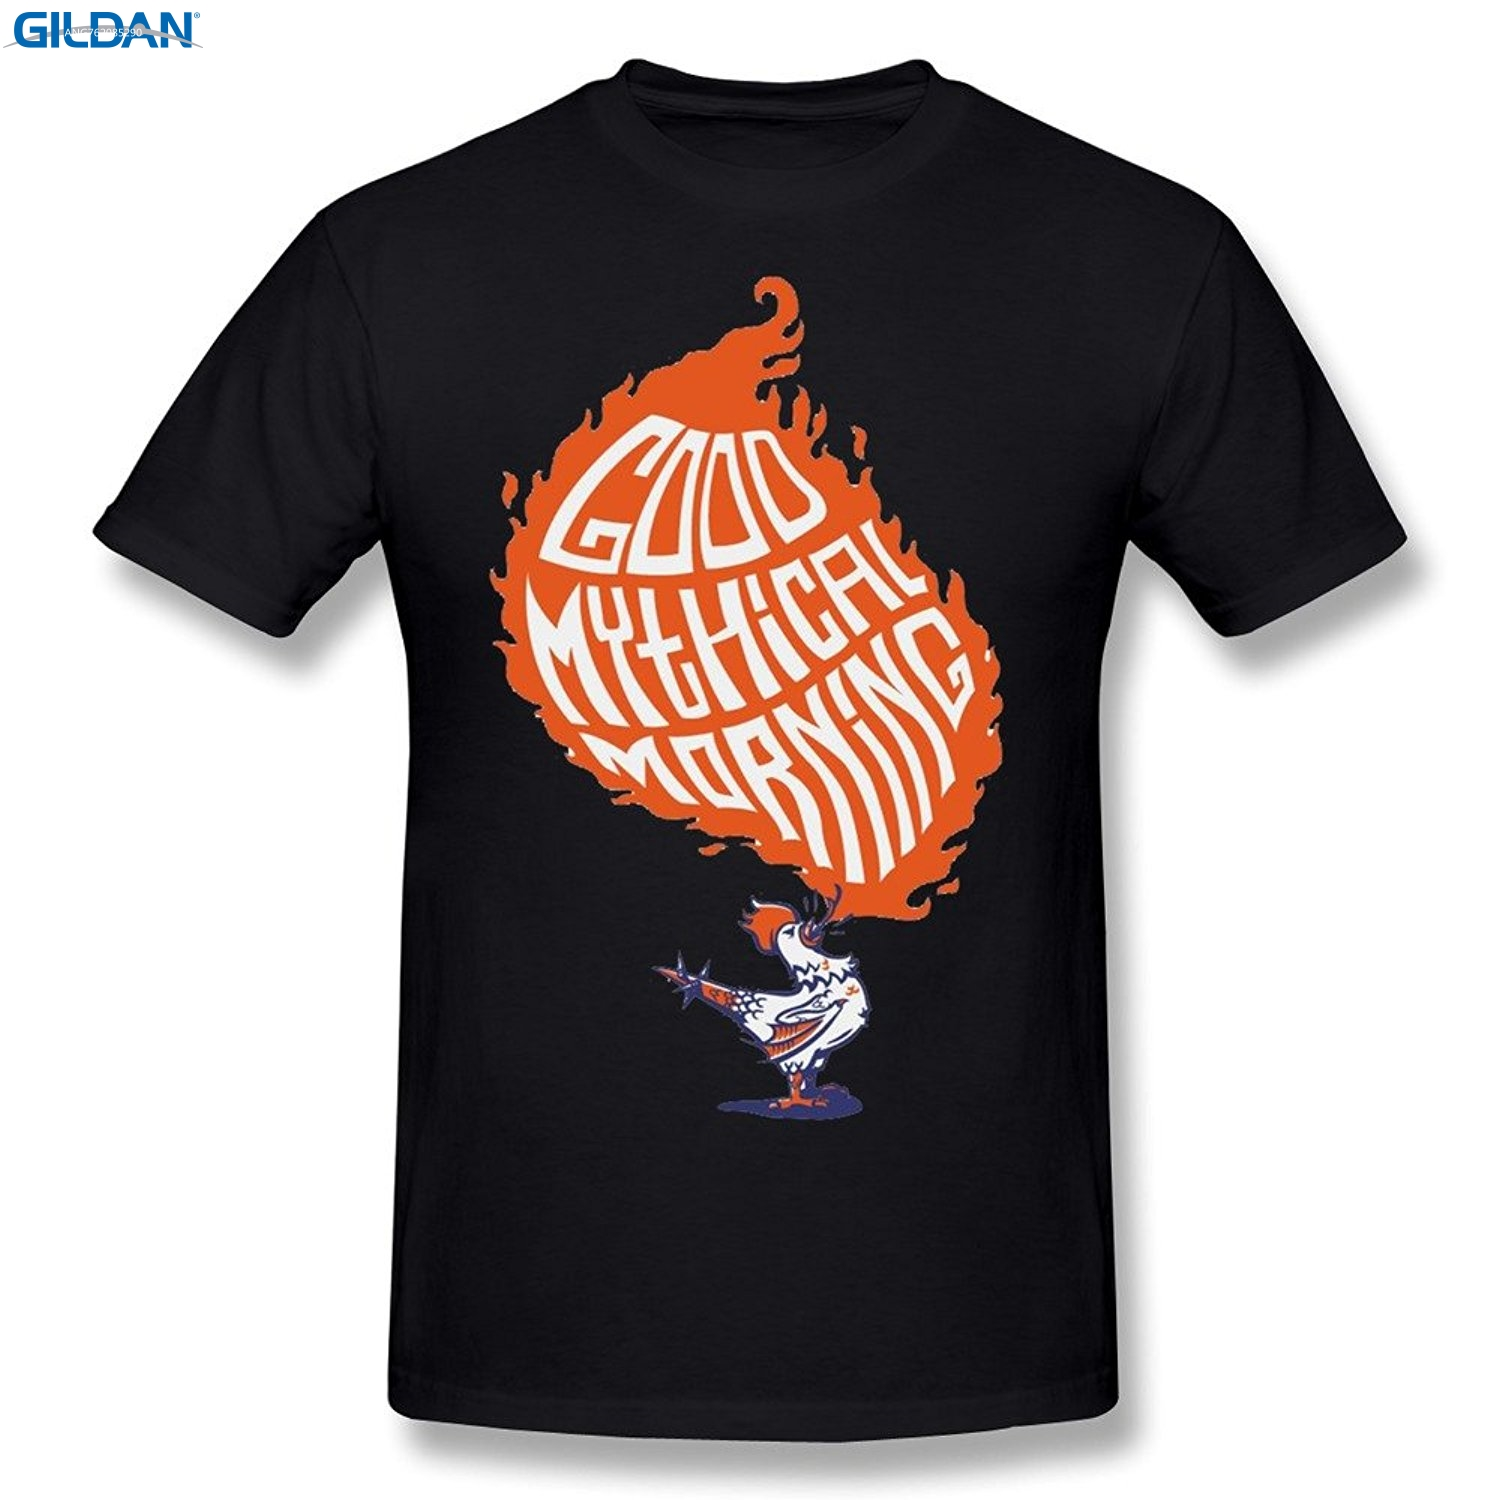 GILDAN Great Discount Cotton Tee 100% Cotton Crew Neck Good Mythical Morning On Pinterest Logo Short-Sleeve Tee